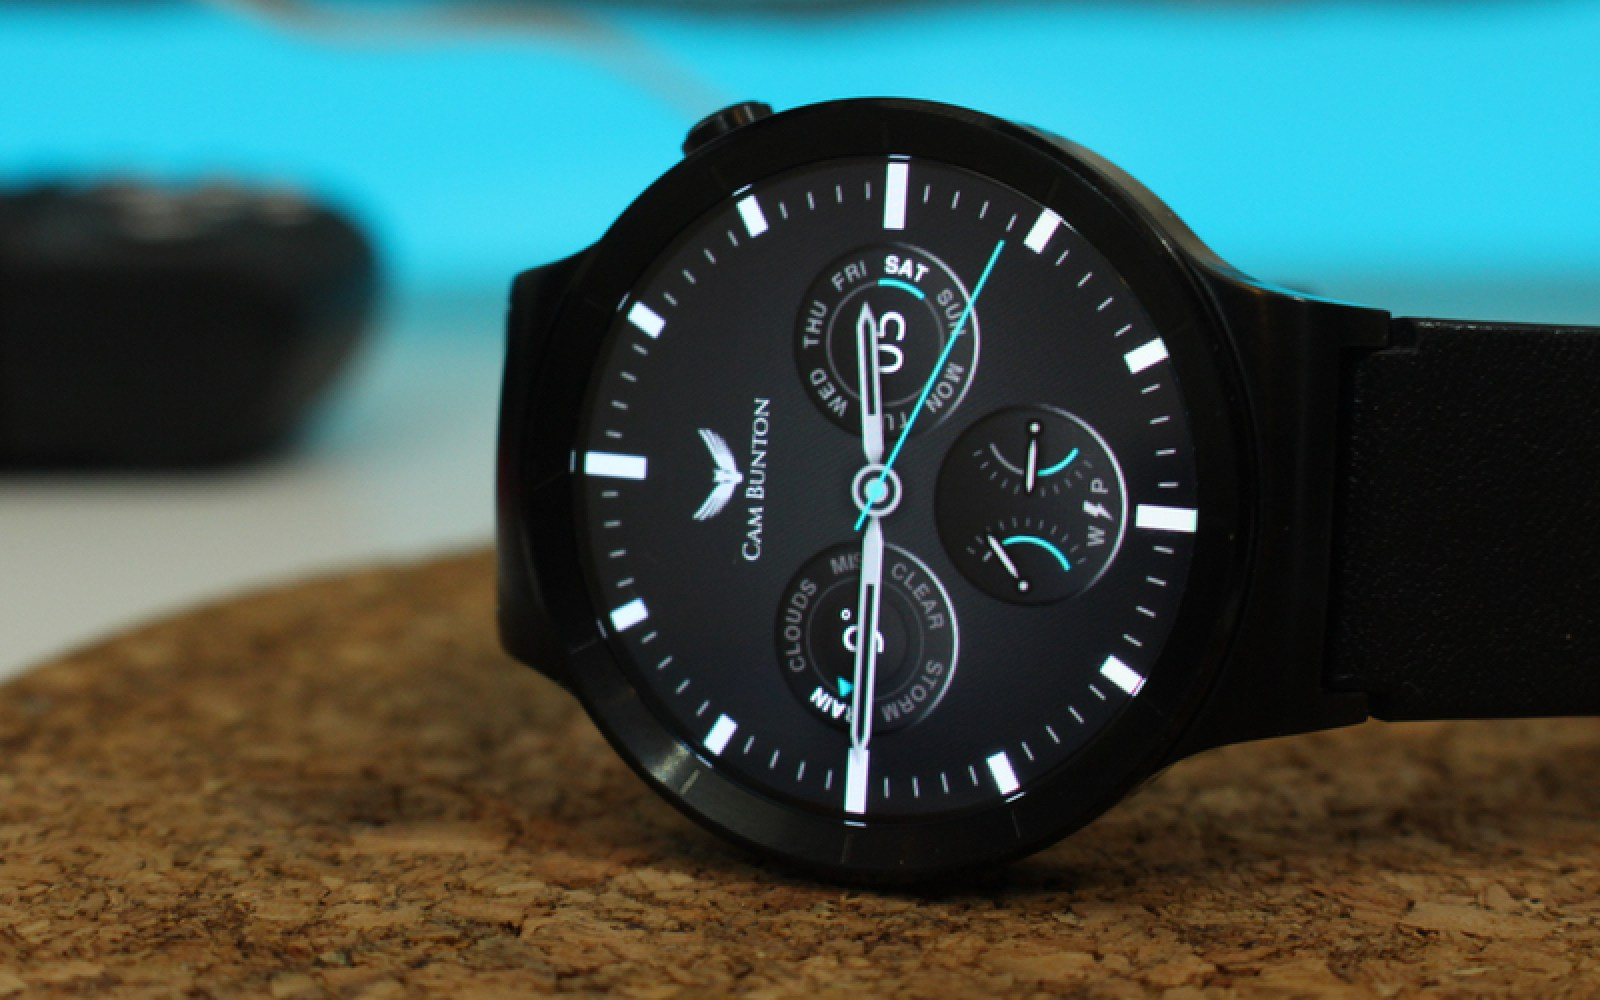 Opinion: Huawei Watch is so close to brilliance, it hurts